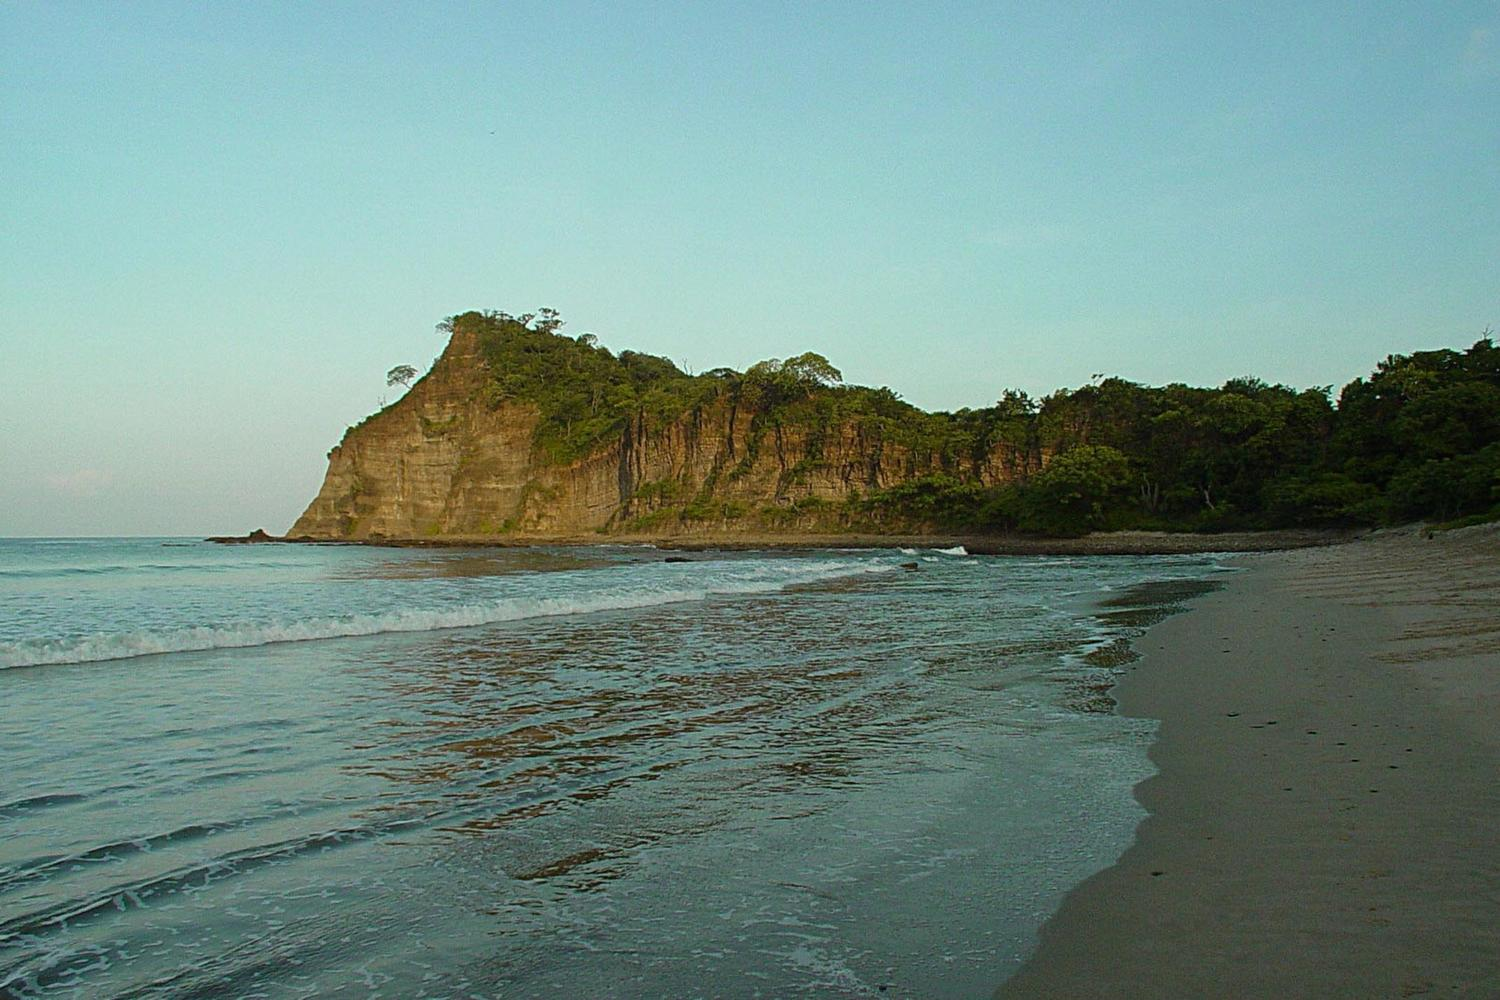 The beaches of Nicaragua's southern Pacific coast